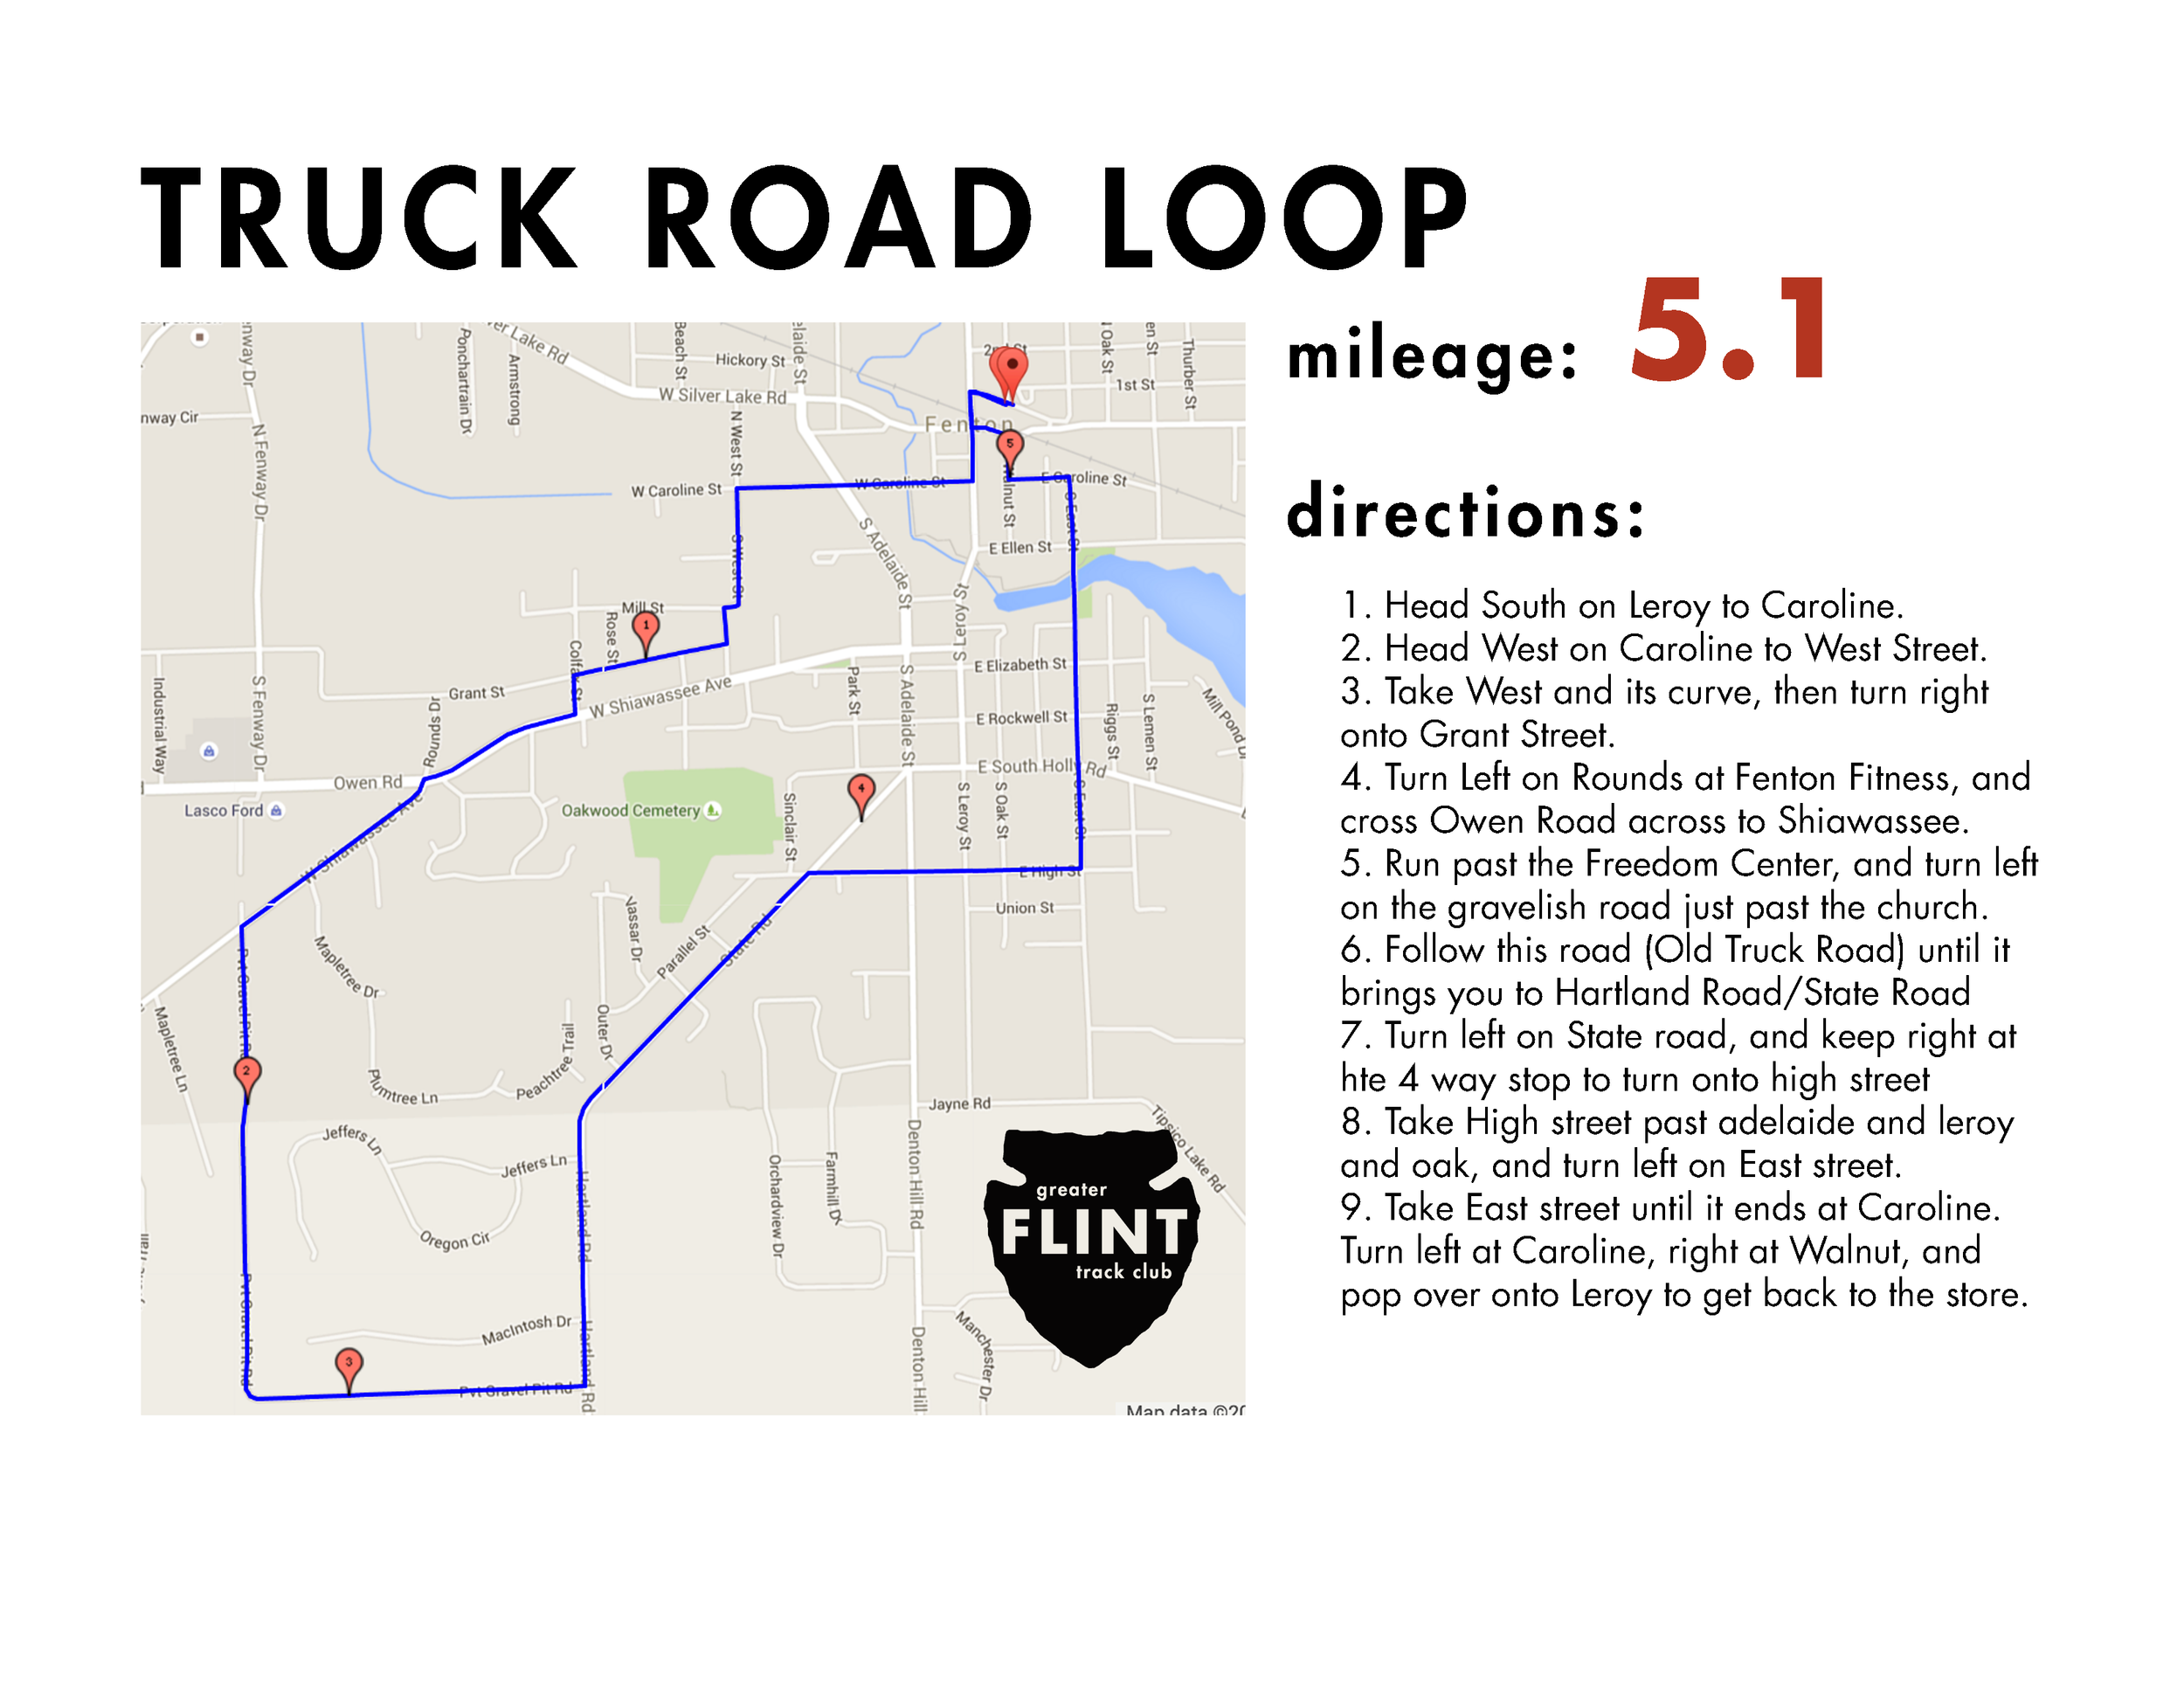 run the infamous truck road - a paved, former trucking road that is now the public-accessible freedom recreation trail. Easy way to throw some woods and a hill or two into a standard downtown route.